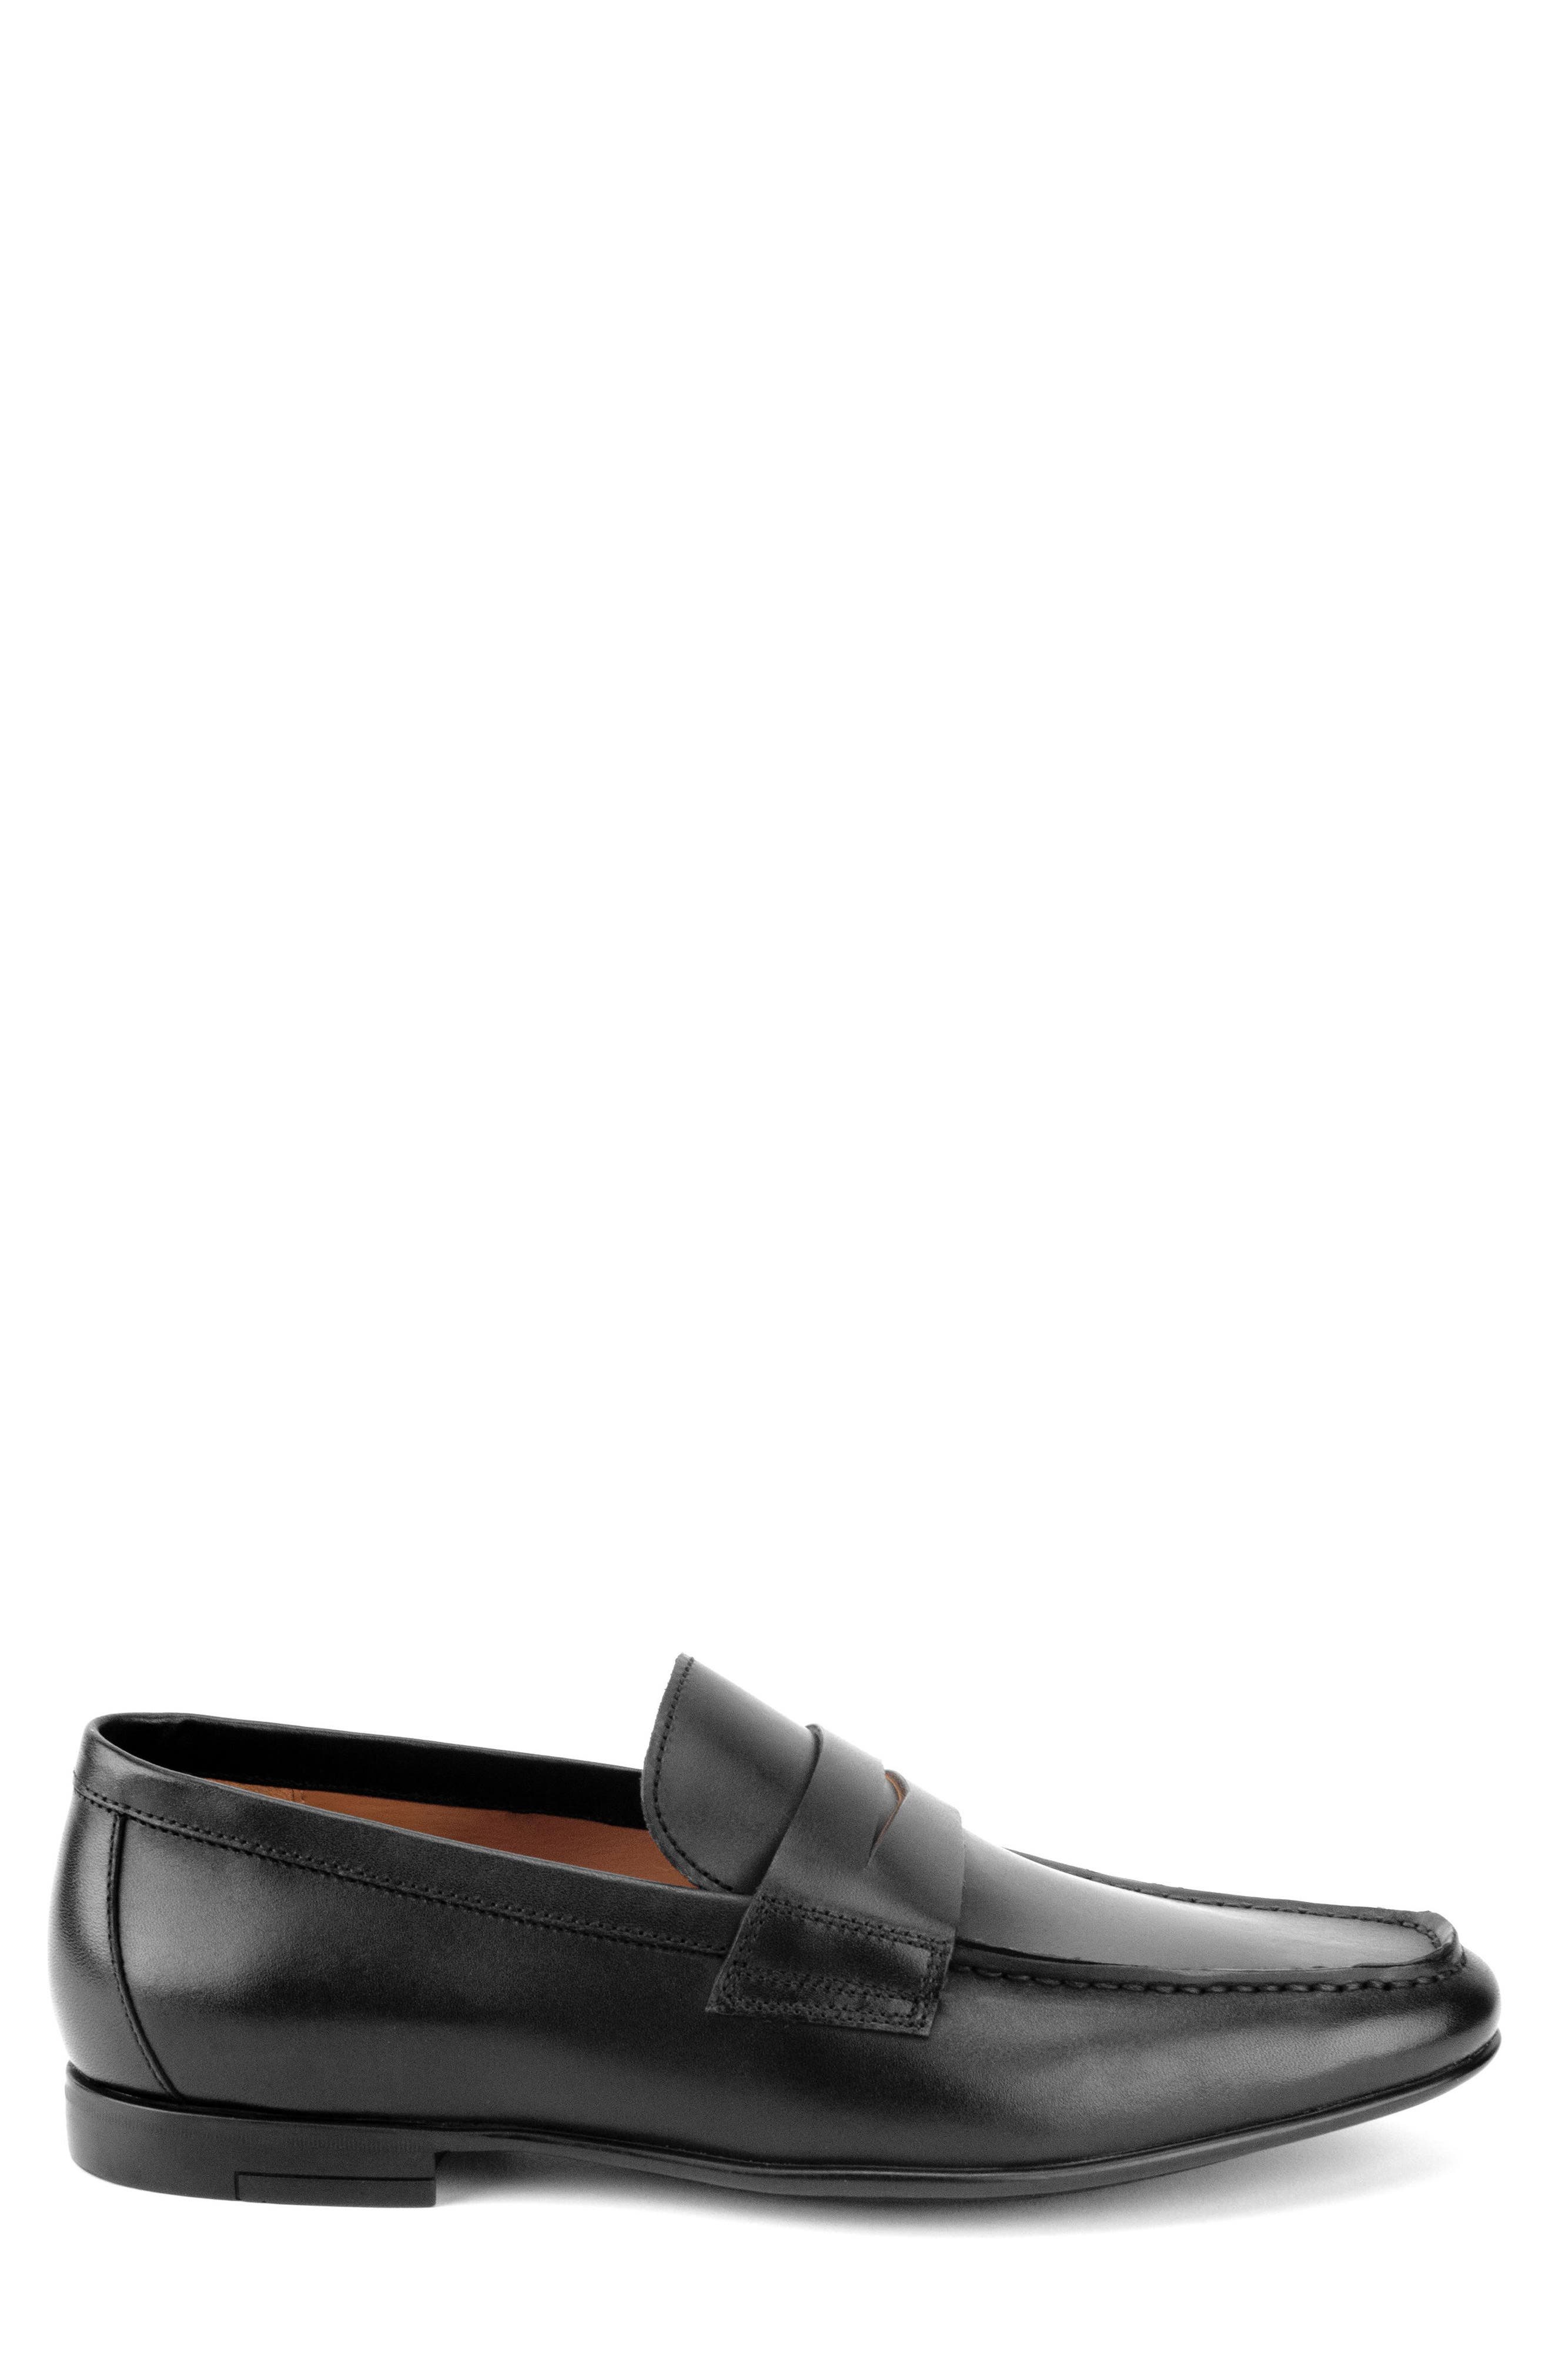 Connery Penny Loafer,                             Alternate thumbnail 3, color,                             BLACK LEATHER